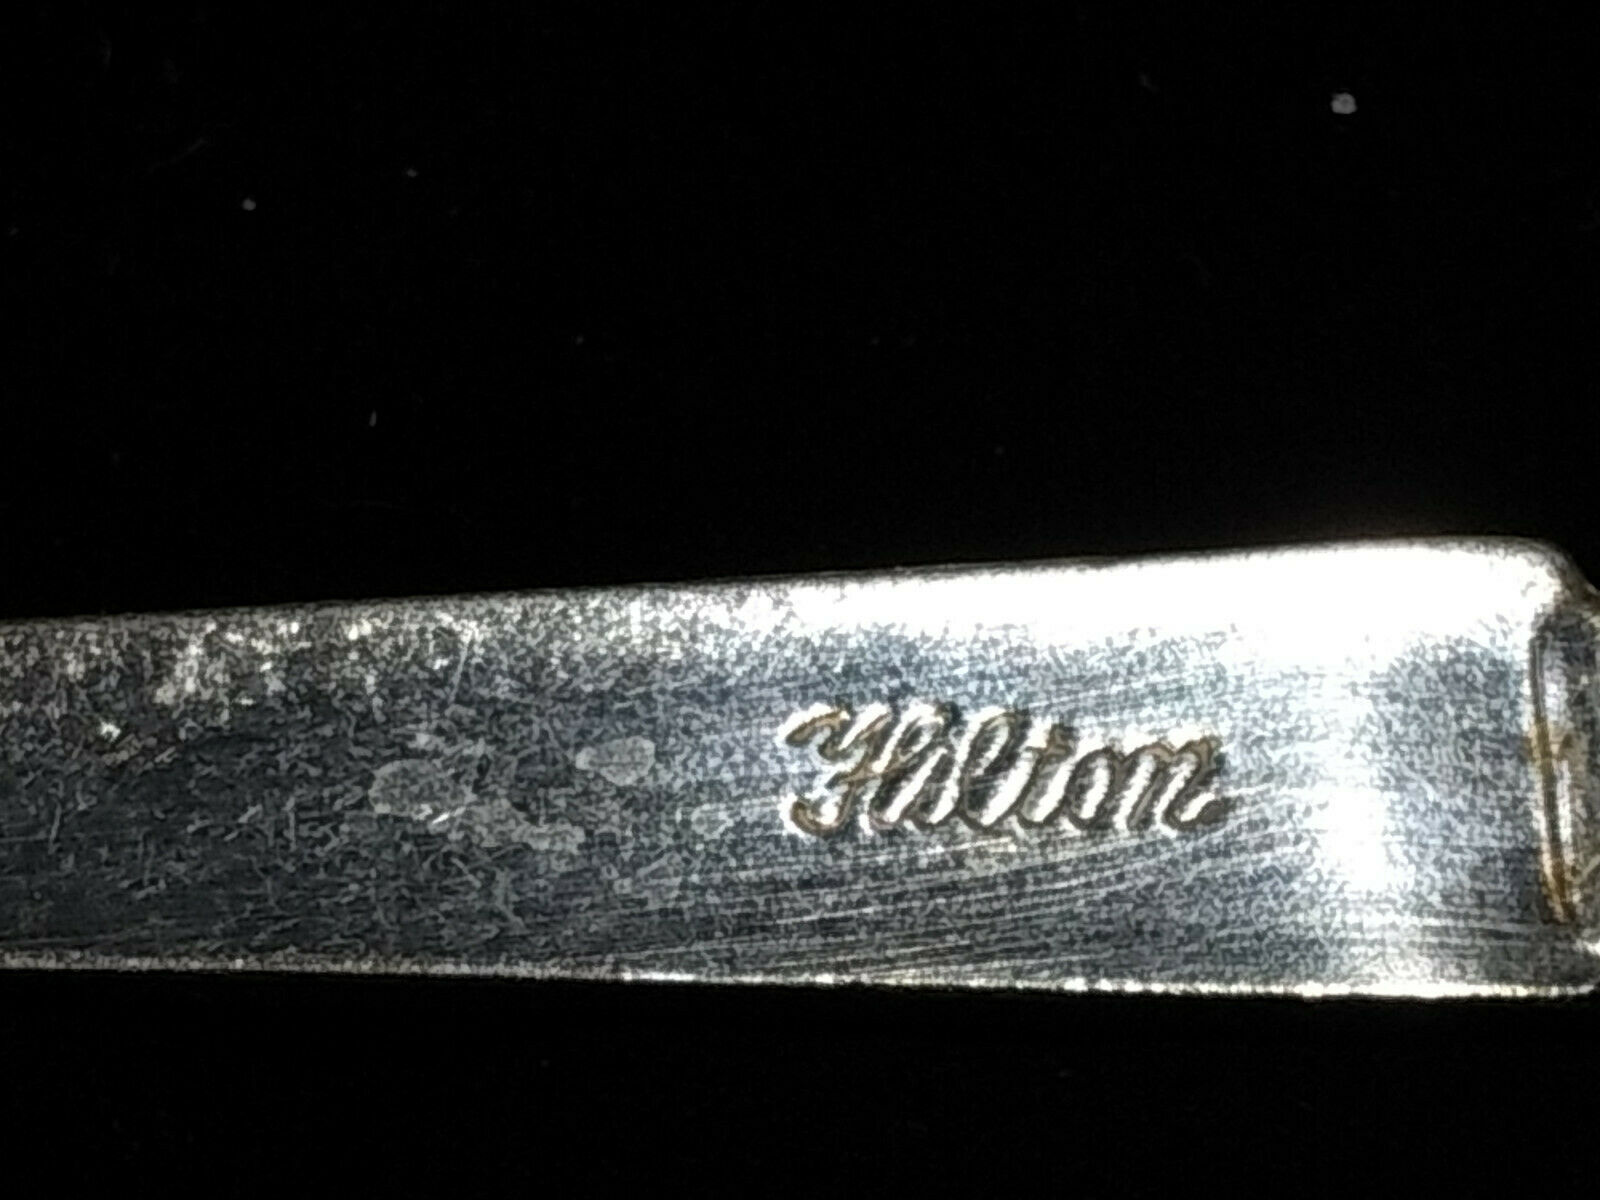 Hilton Hotel Small Spoon International Silver Co 6 Inch Advertising